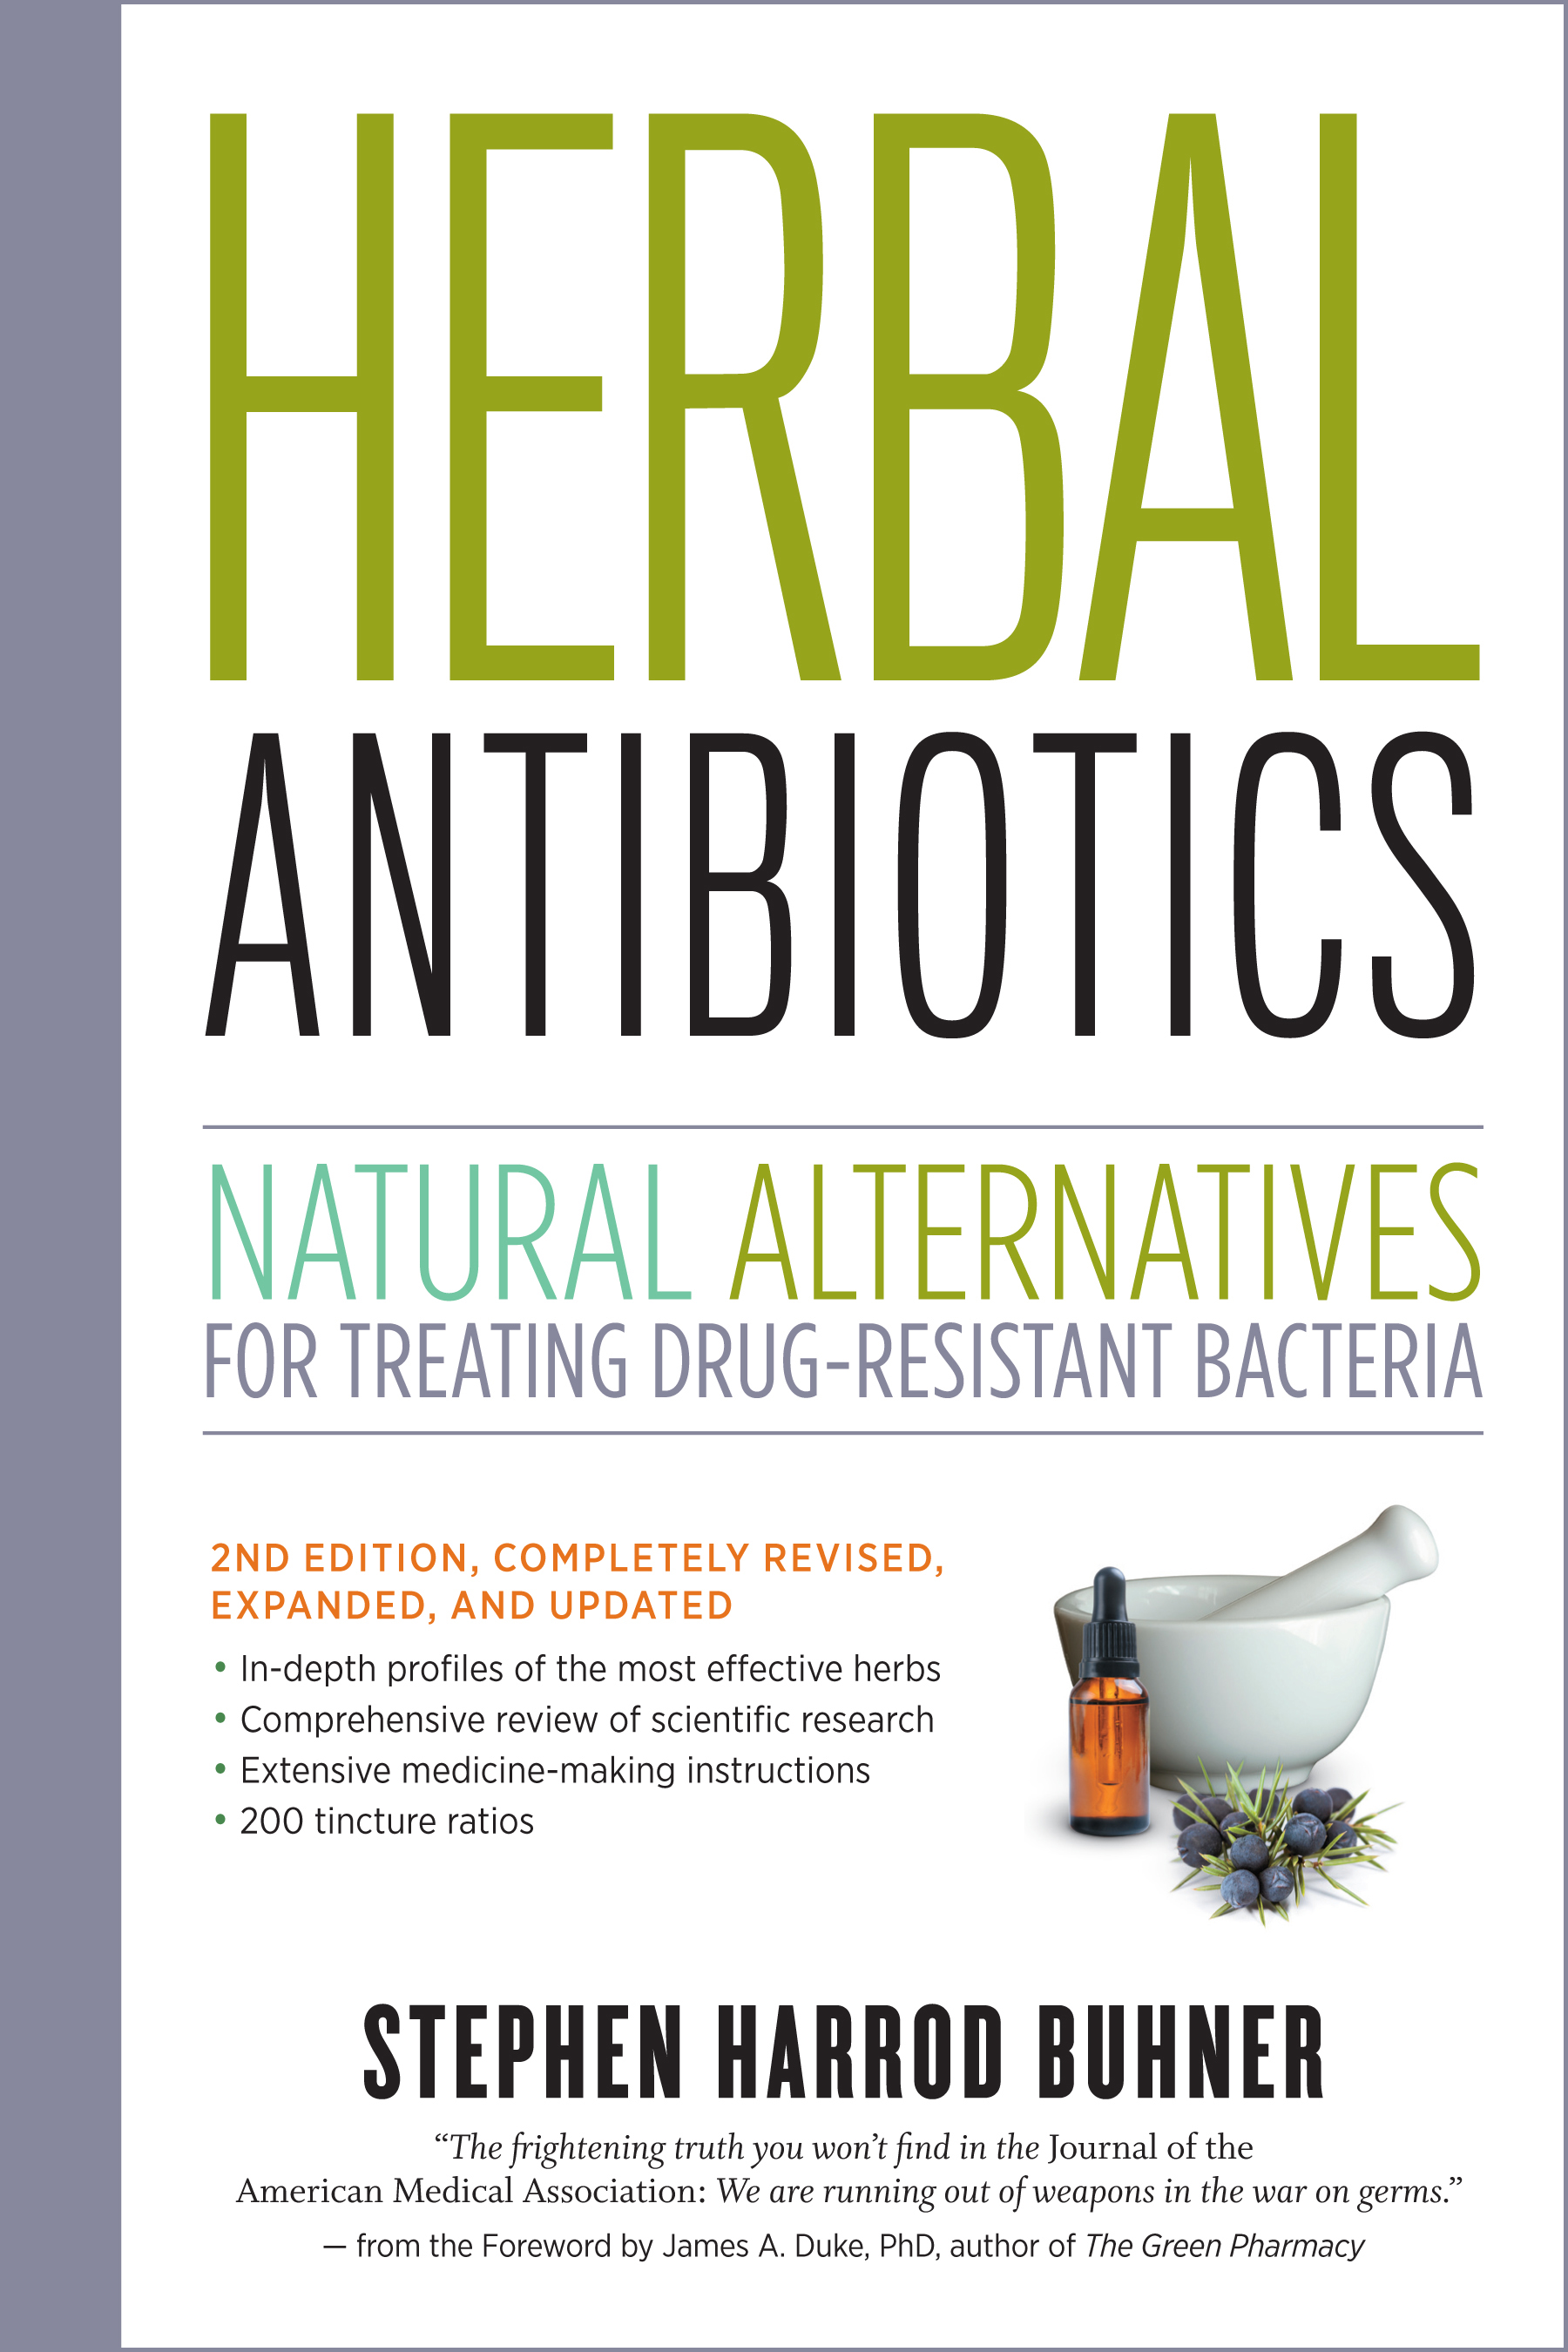 Herbal Antibiotics, 2nd Edition Natural Alternatives for Treating Drug-resistant Bacteria - Stephen Harrod Buhner